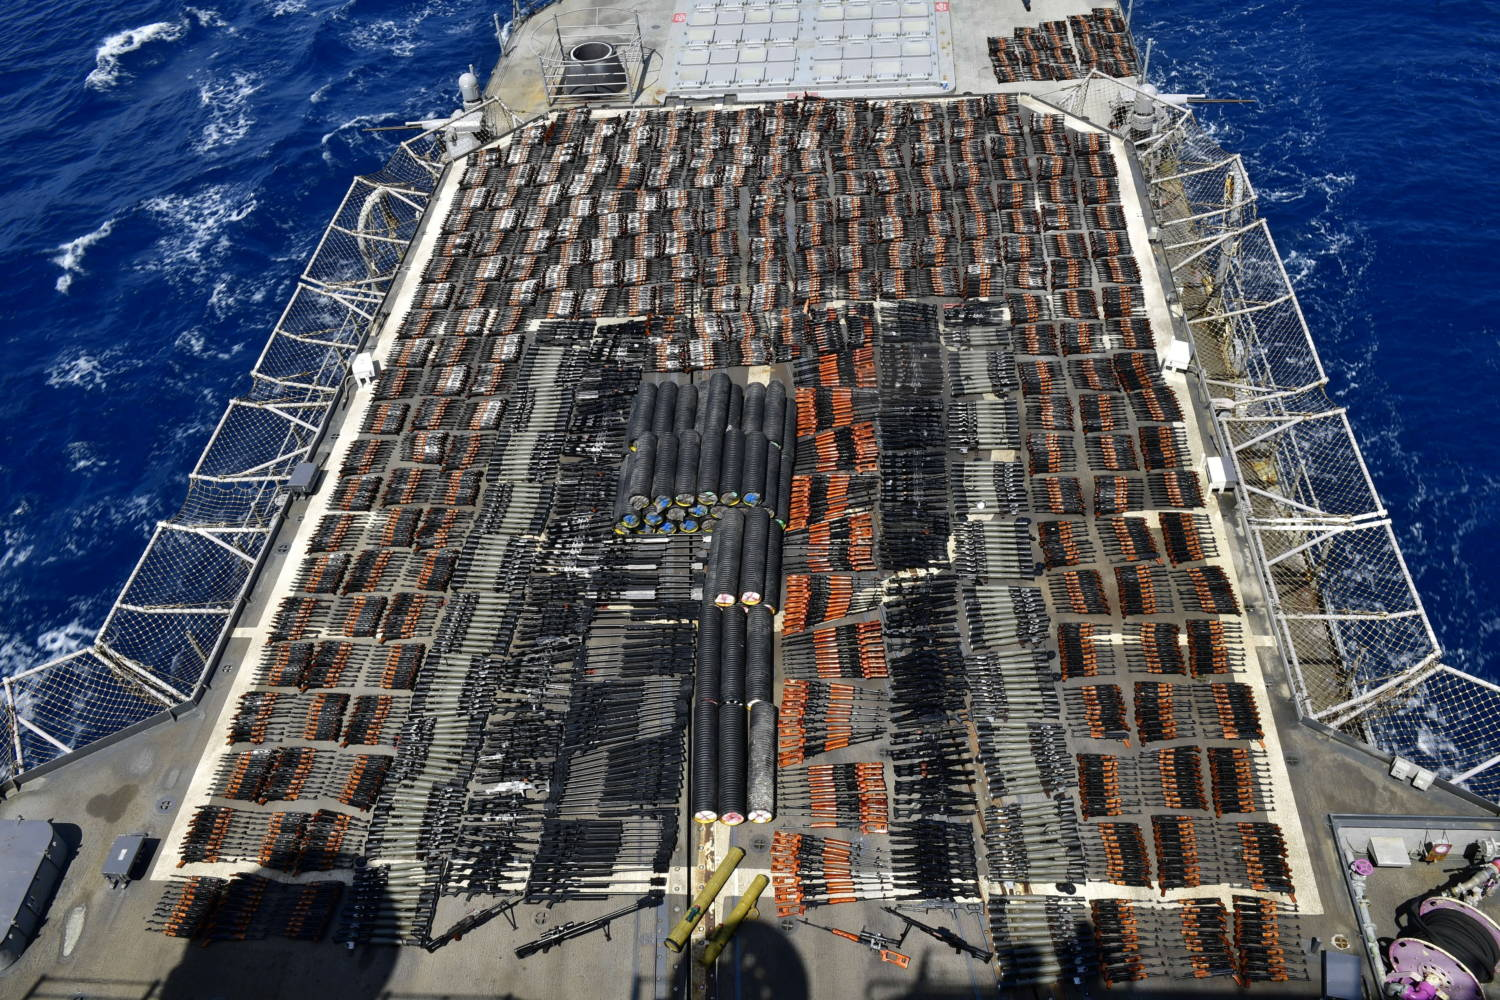 U.S. 5th Fleet seizes weapons shipment from stateless dhow in Arabian Sea